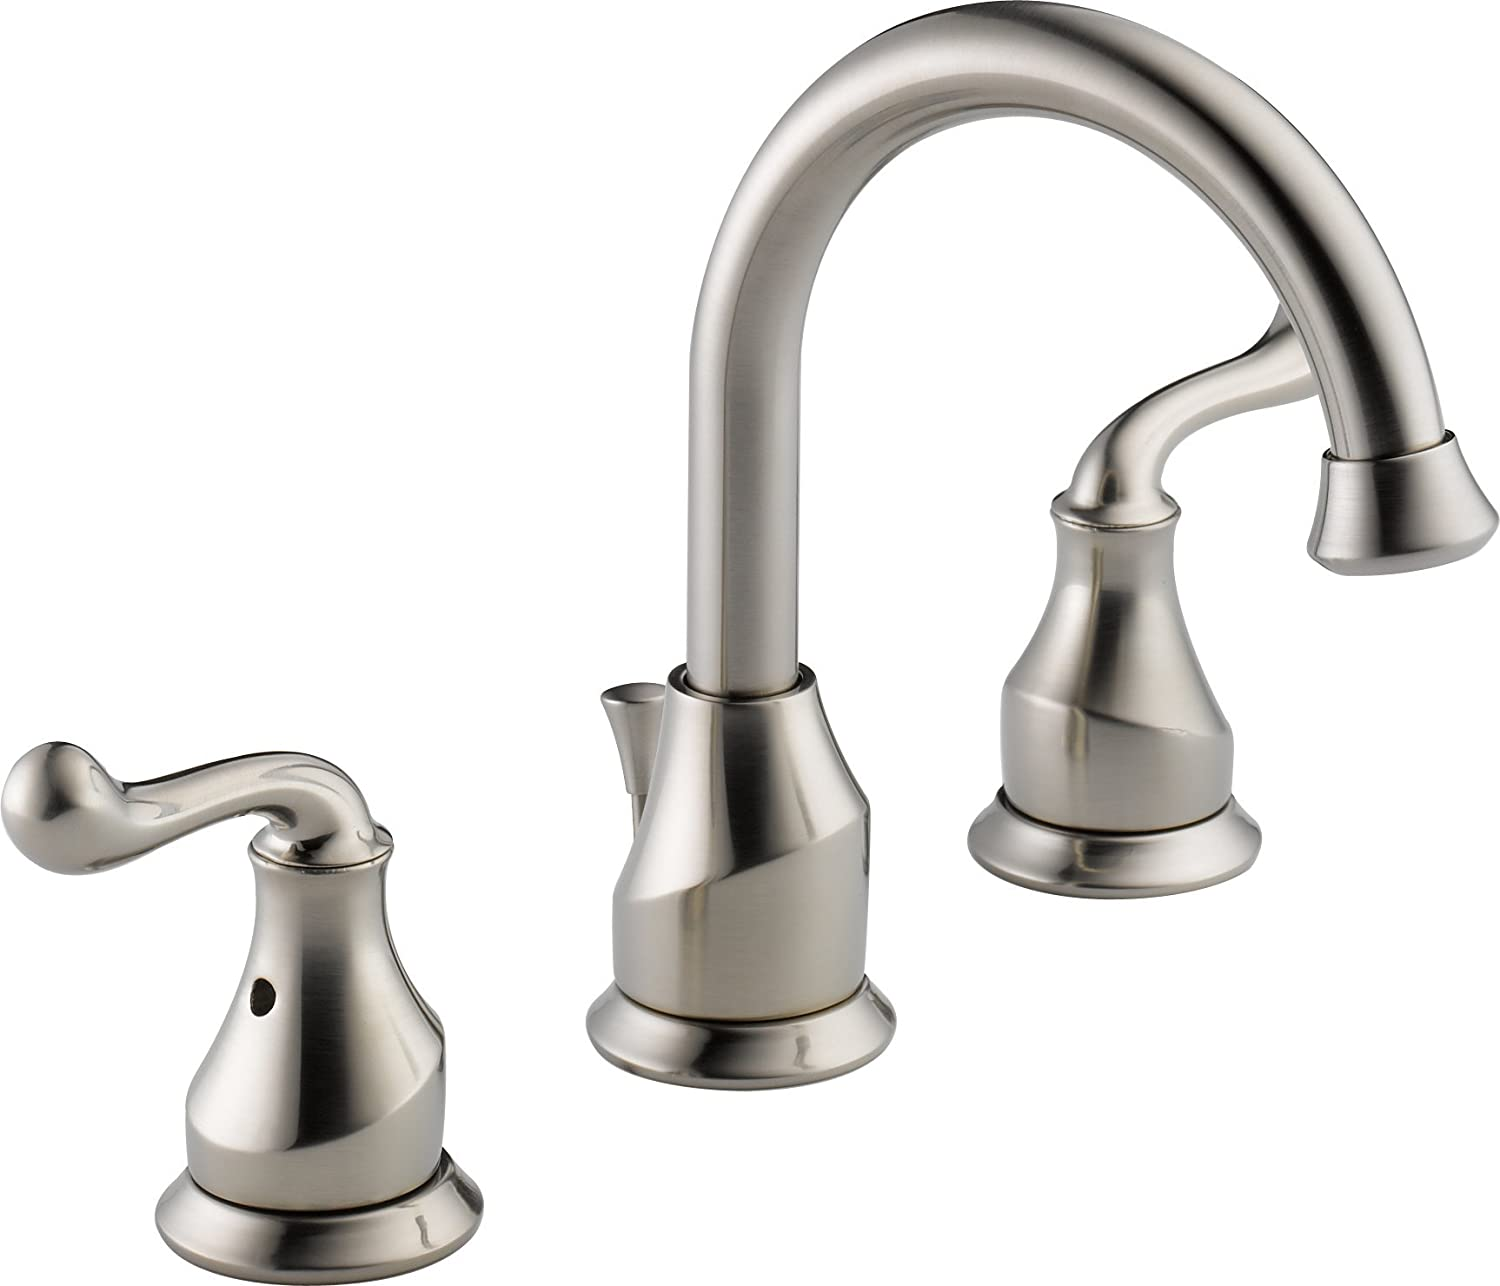 Delta LFSS Talbott Two Handle Widespread Bathroom Faucet - Delta bathroom vanity faucets